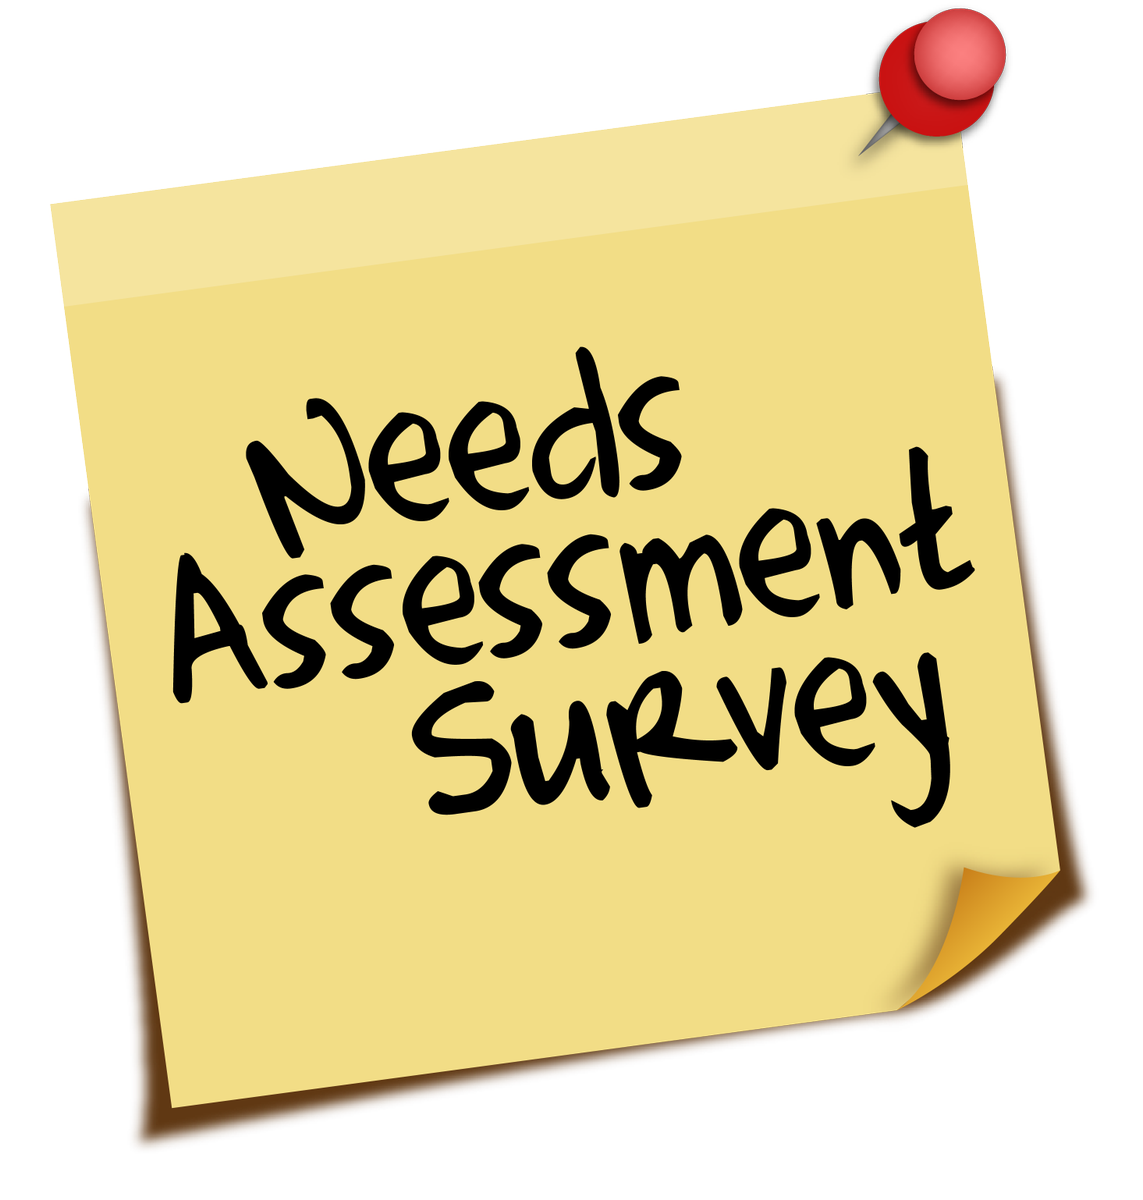 NEEDS ASSESSMENT SURVEY: HCS is conducting this survey to gather information about the needs of our students and families as we plan for re-entry. This information will be shared with schools and the board of education. Thank you for completing the survey.